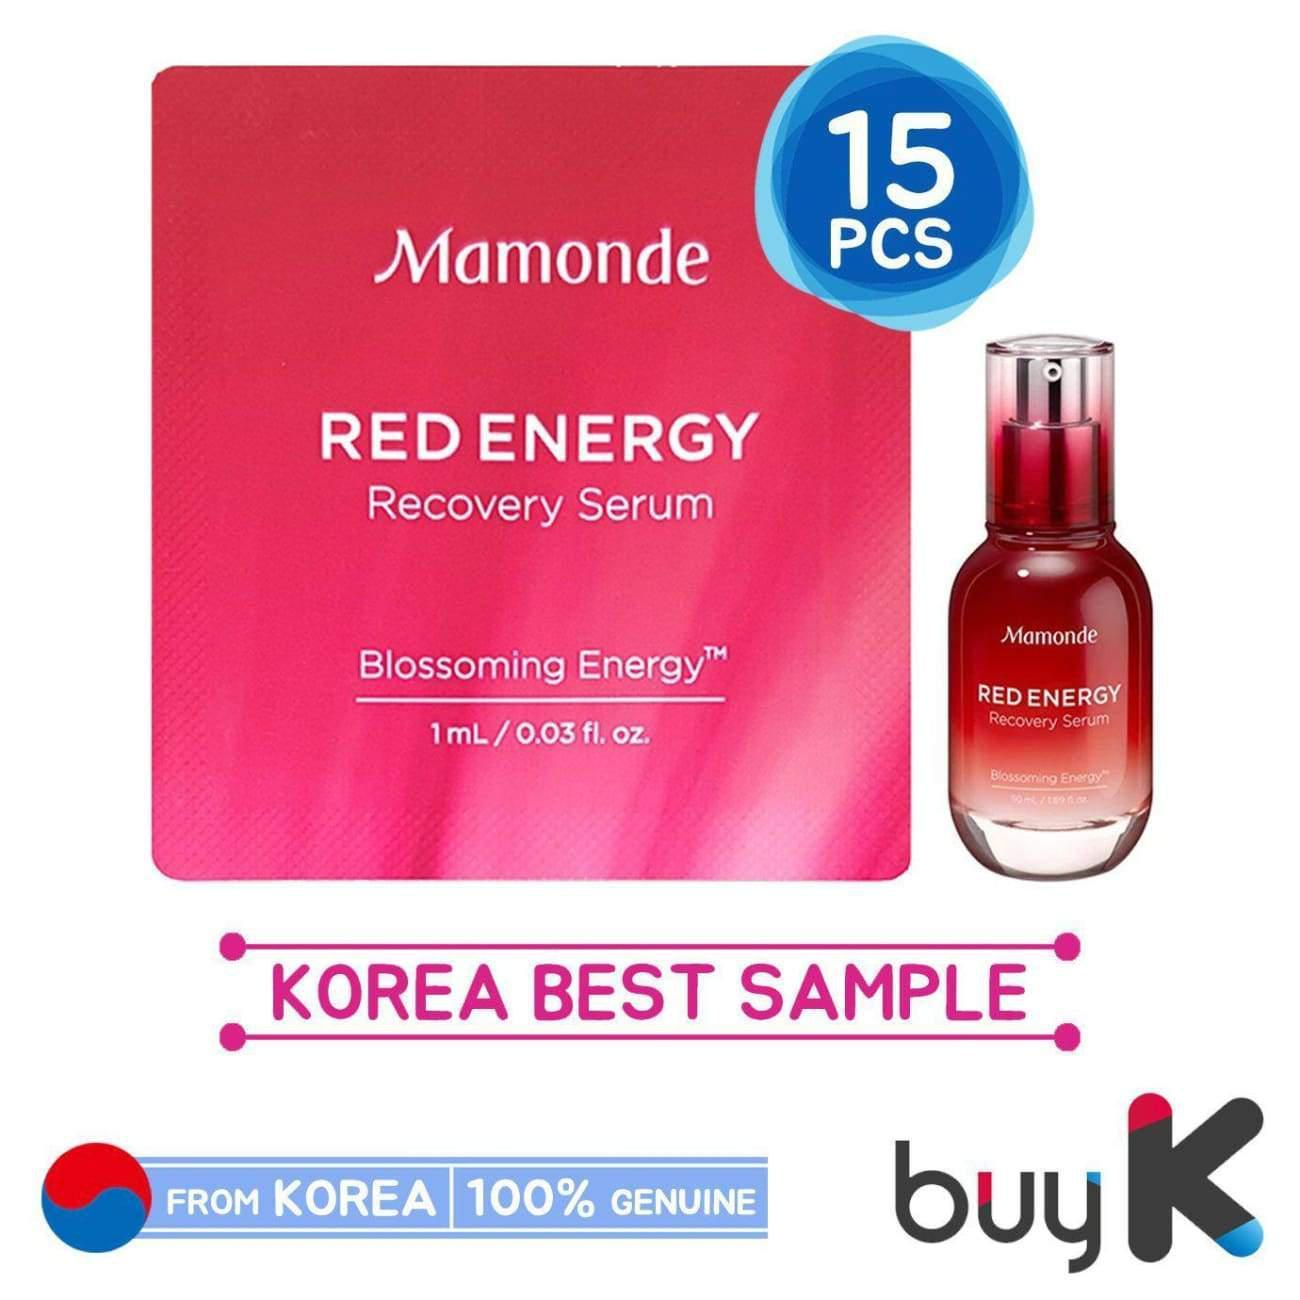 15pcs [MAMONDE] Red Energy Recovery Serum 1ml (Sample Sachet)